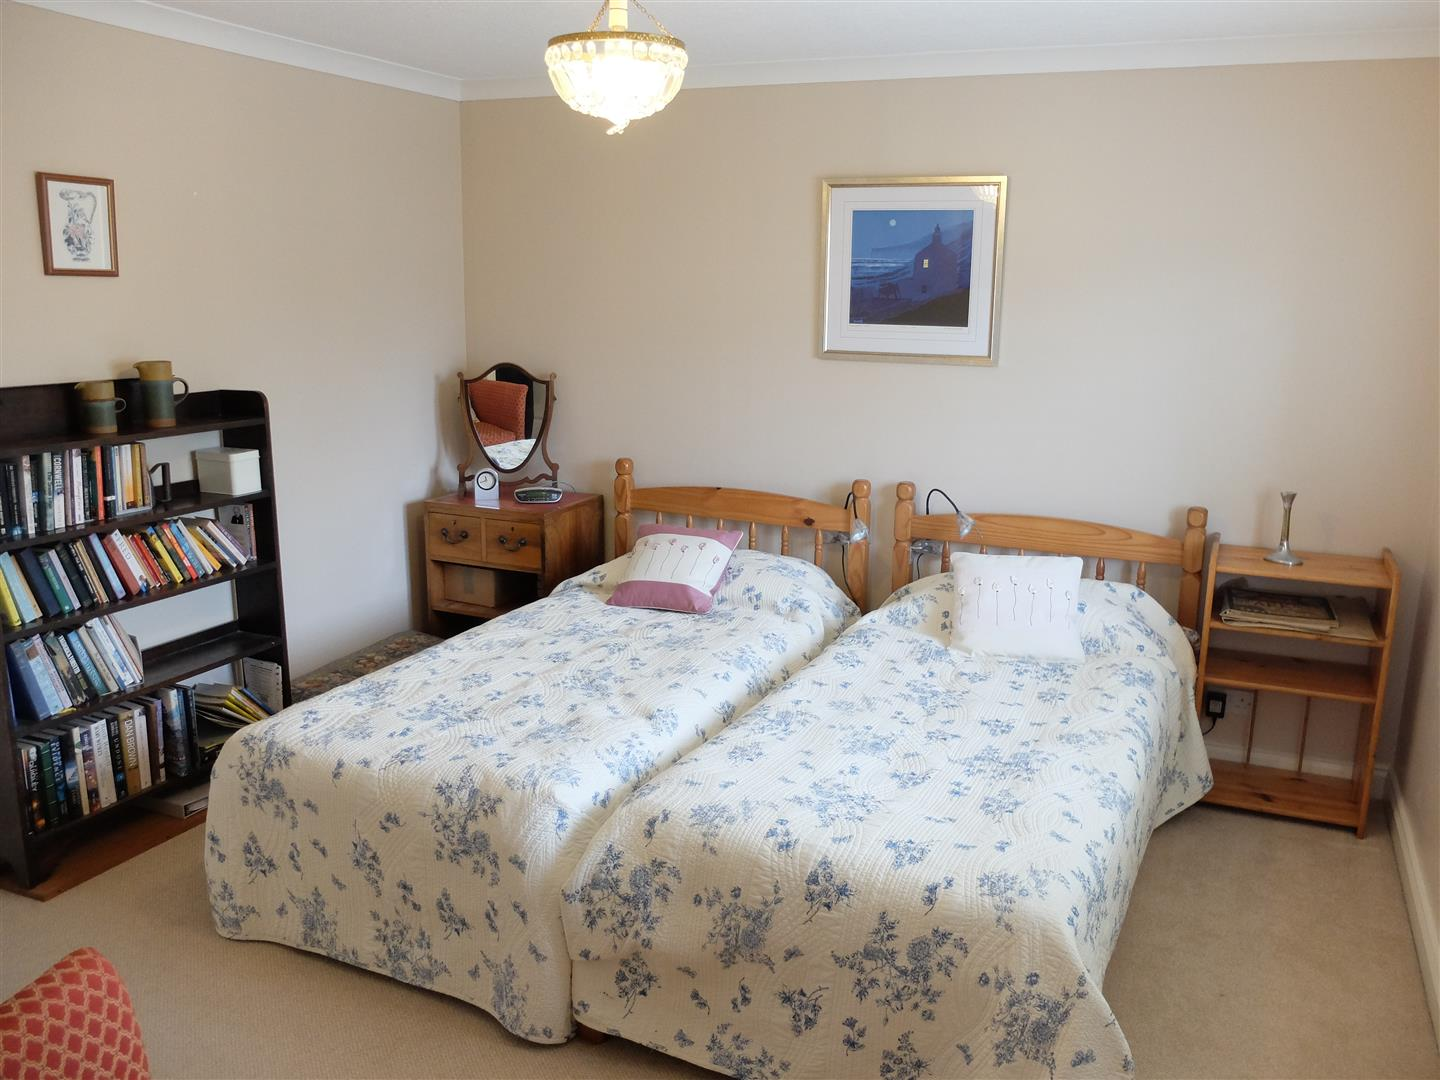 Home On Sale The Limes Arthuret Road Carlisle 240,000